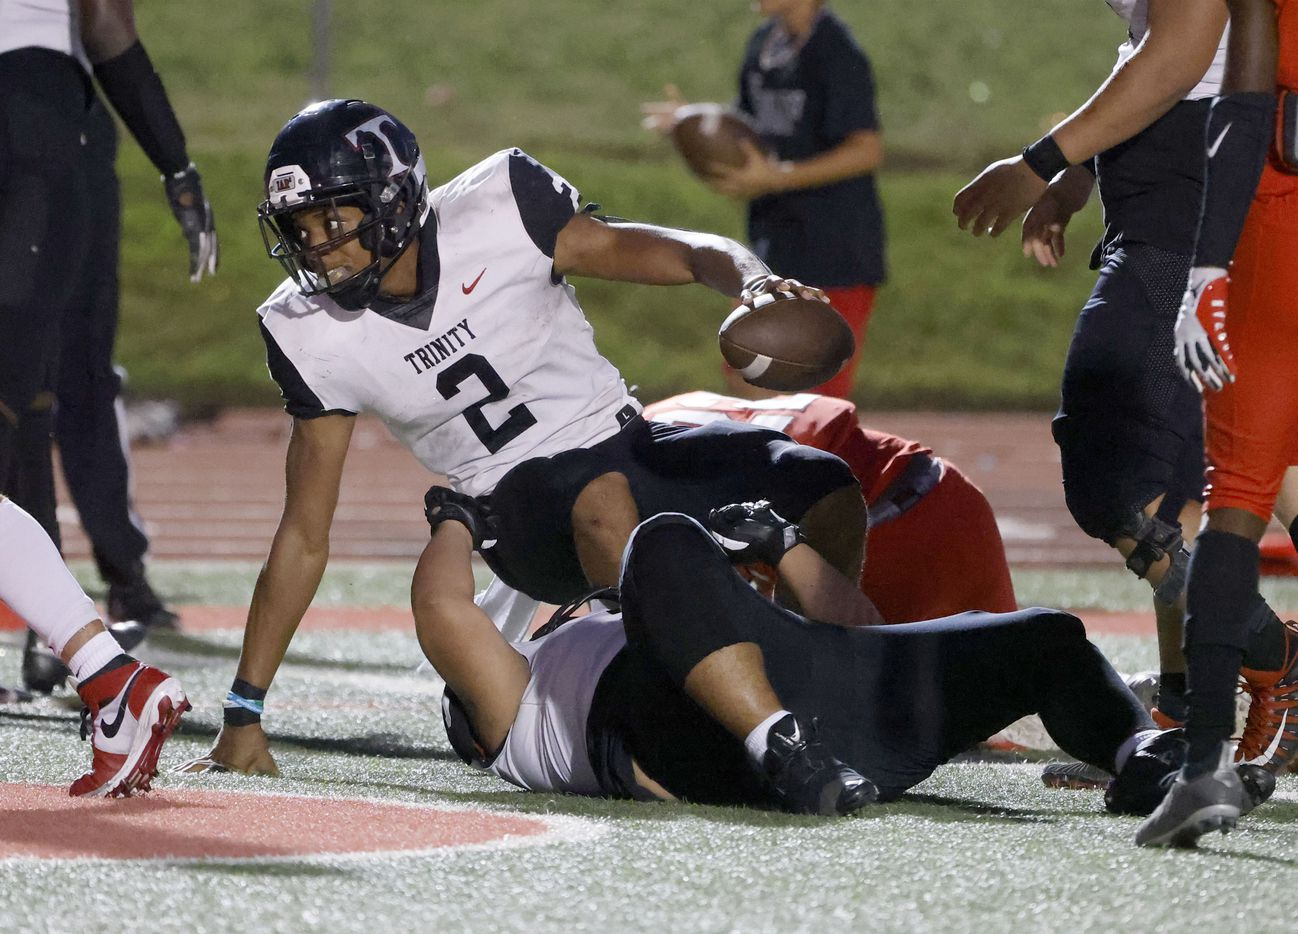 Euless Trinity quarterback Ollie Gordon (2) scores a rushing touchdown against Colleyville Heritage during the first half of a high school football game in Grapevine, Texas on Friday, Sept. 10, 2021. (Michael Ainsworth/Special Contributor)